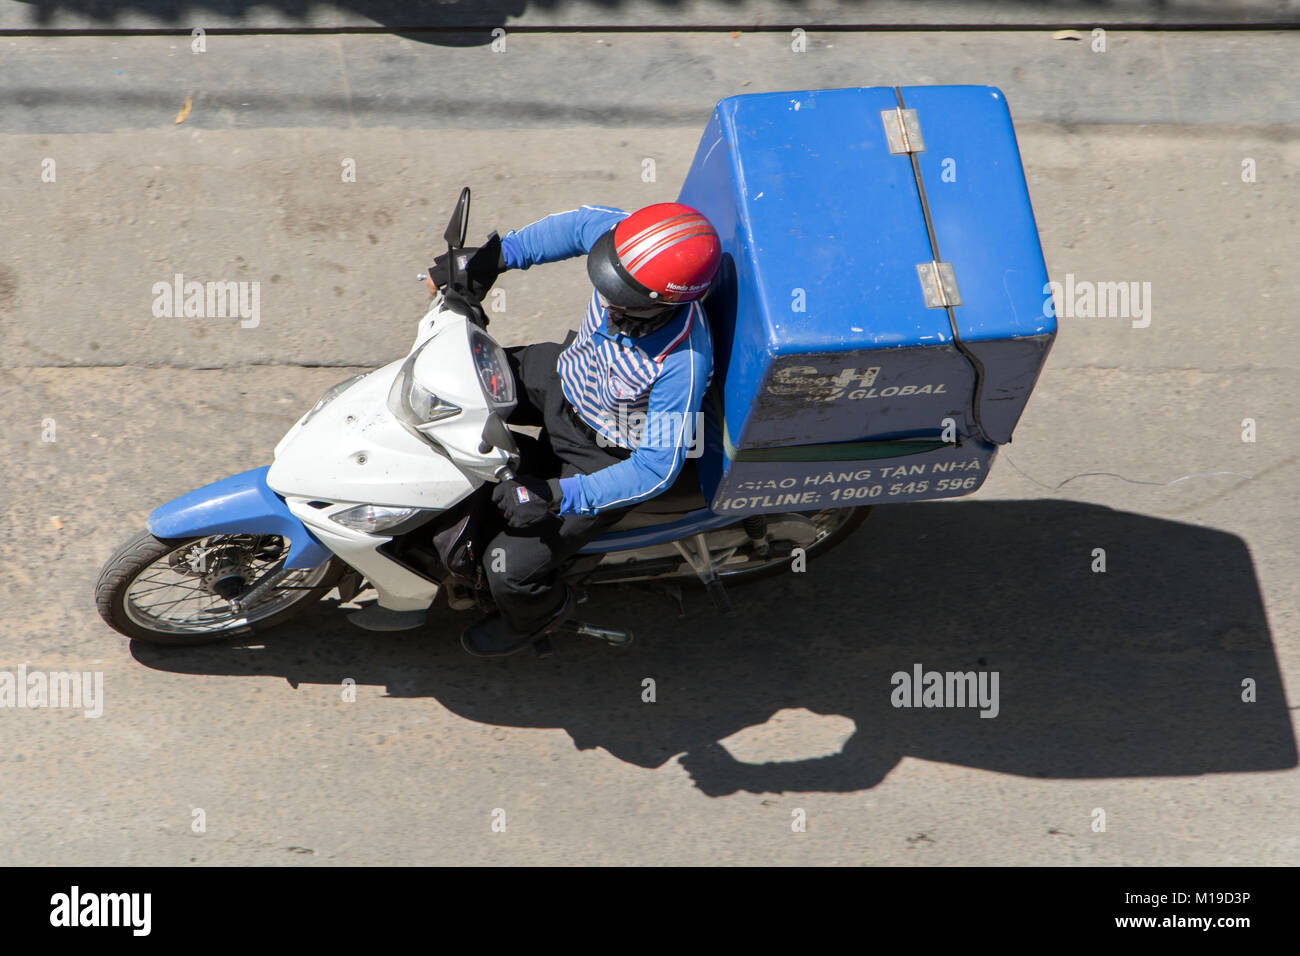 SAIGON, VIETNAM, DEC 17 2017, Delivery of consignments on motorbike. Motorcyclist rides with delivery in the large - Stock Image